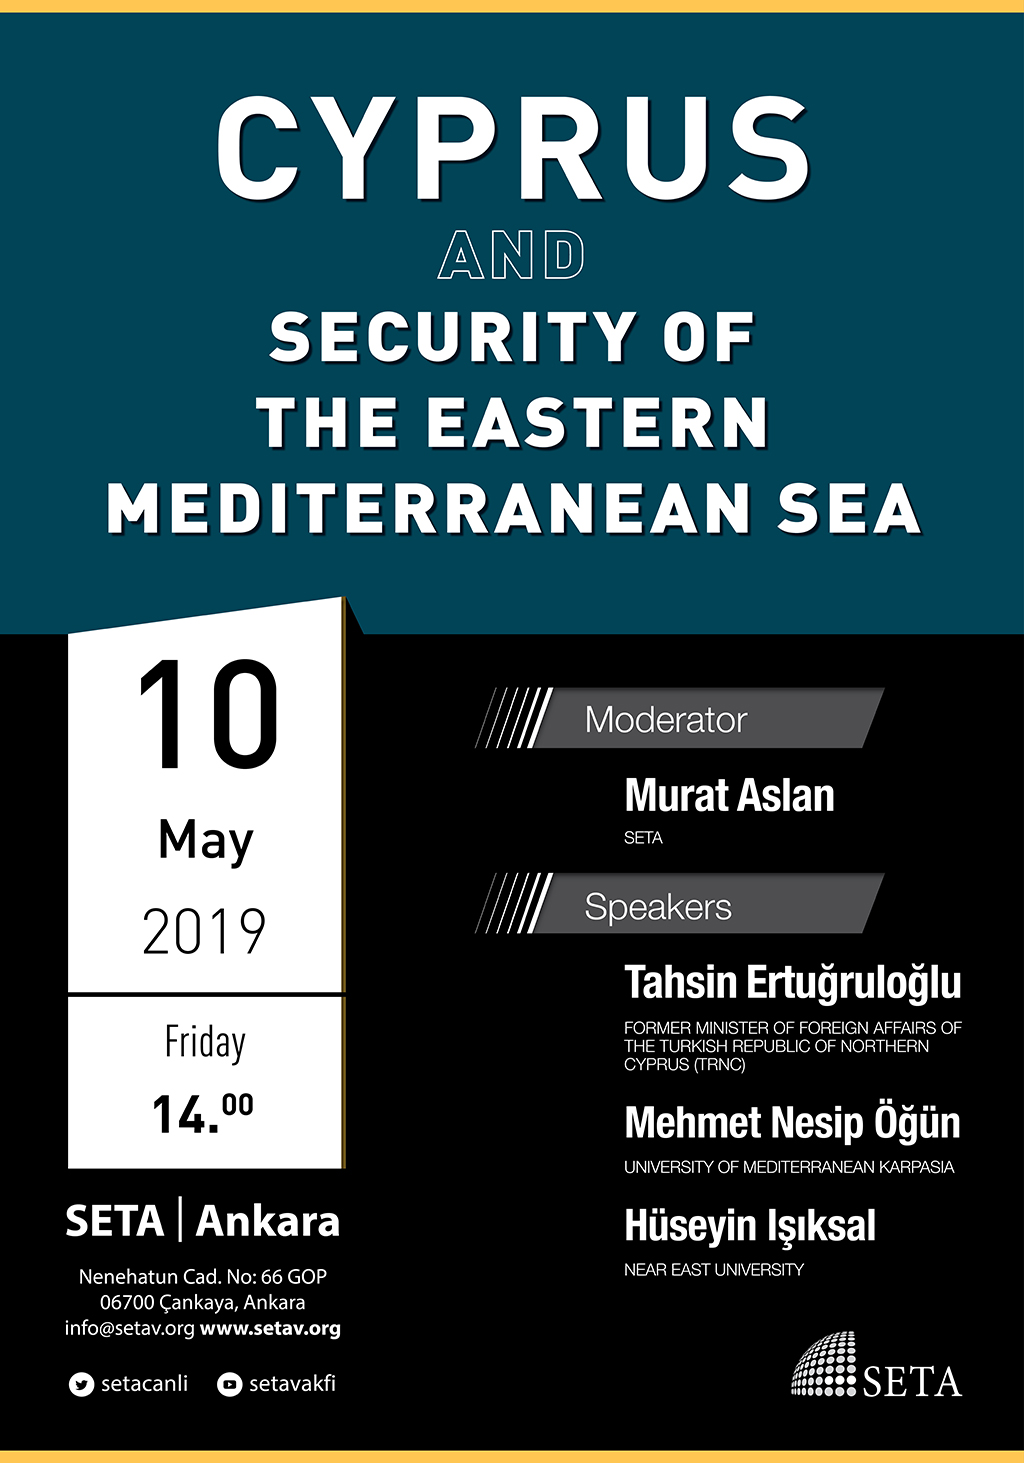 Panel: Cyprus and the Security of the Eastern Mediterranean Sea